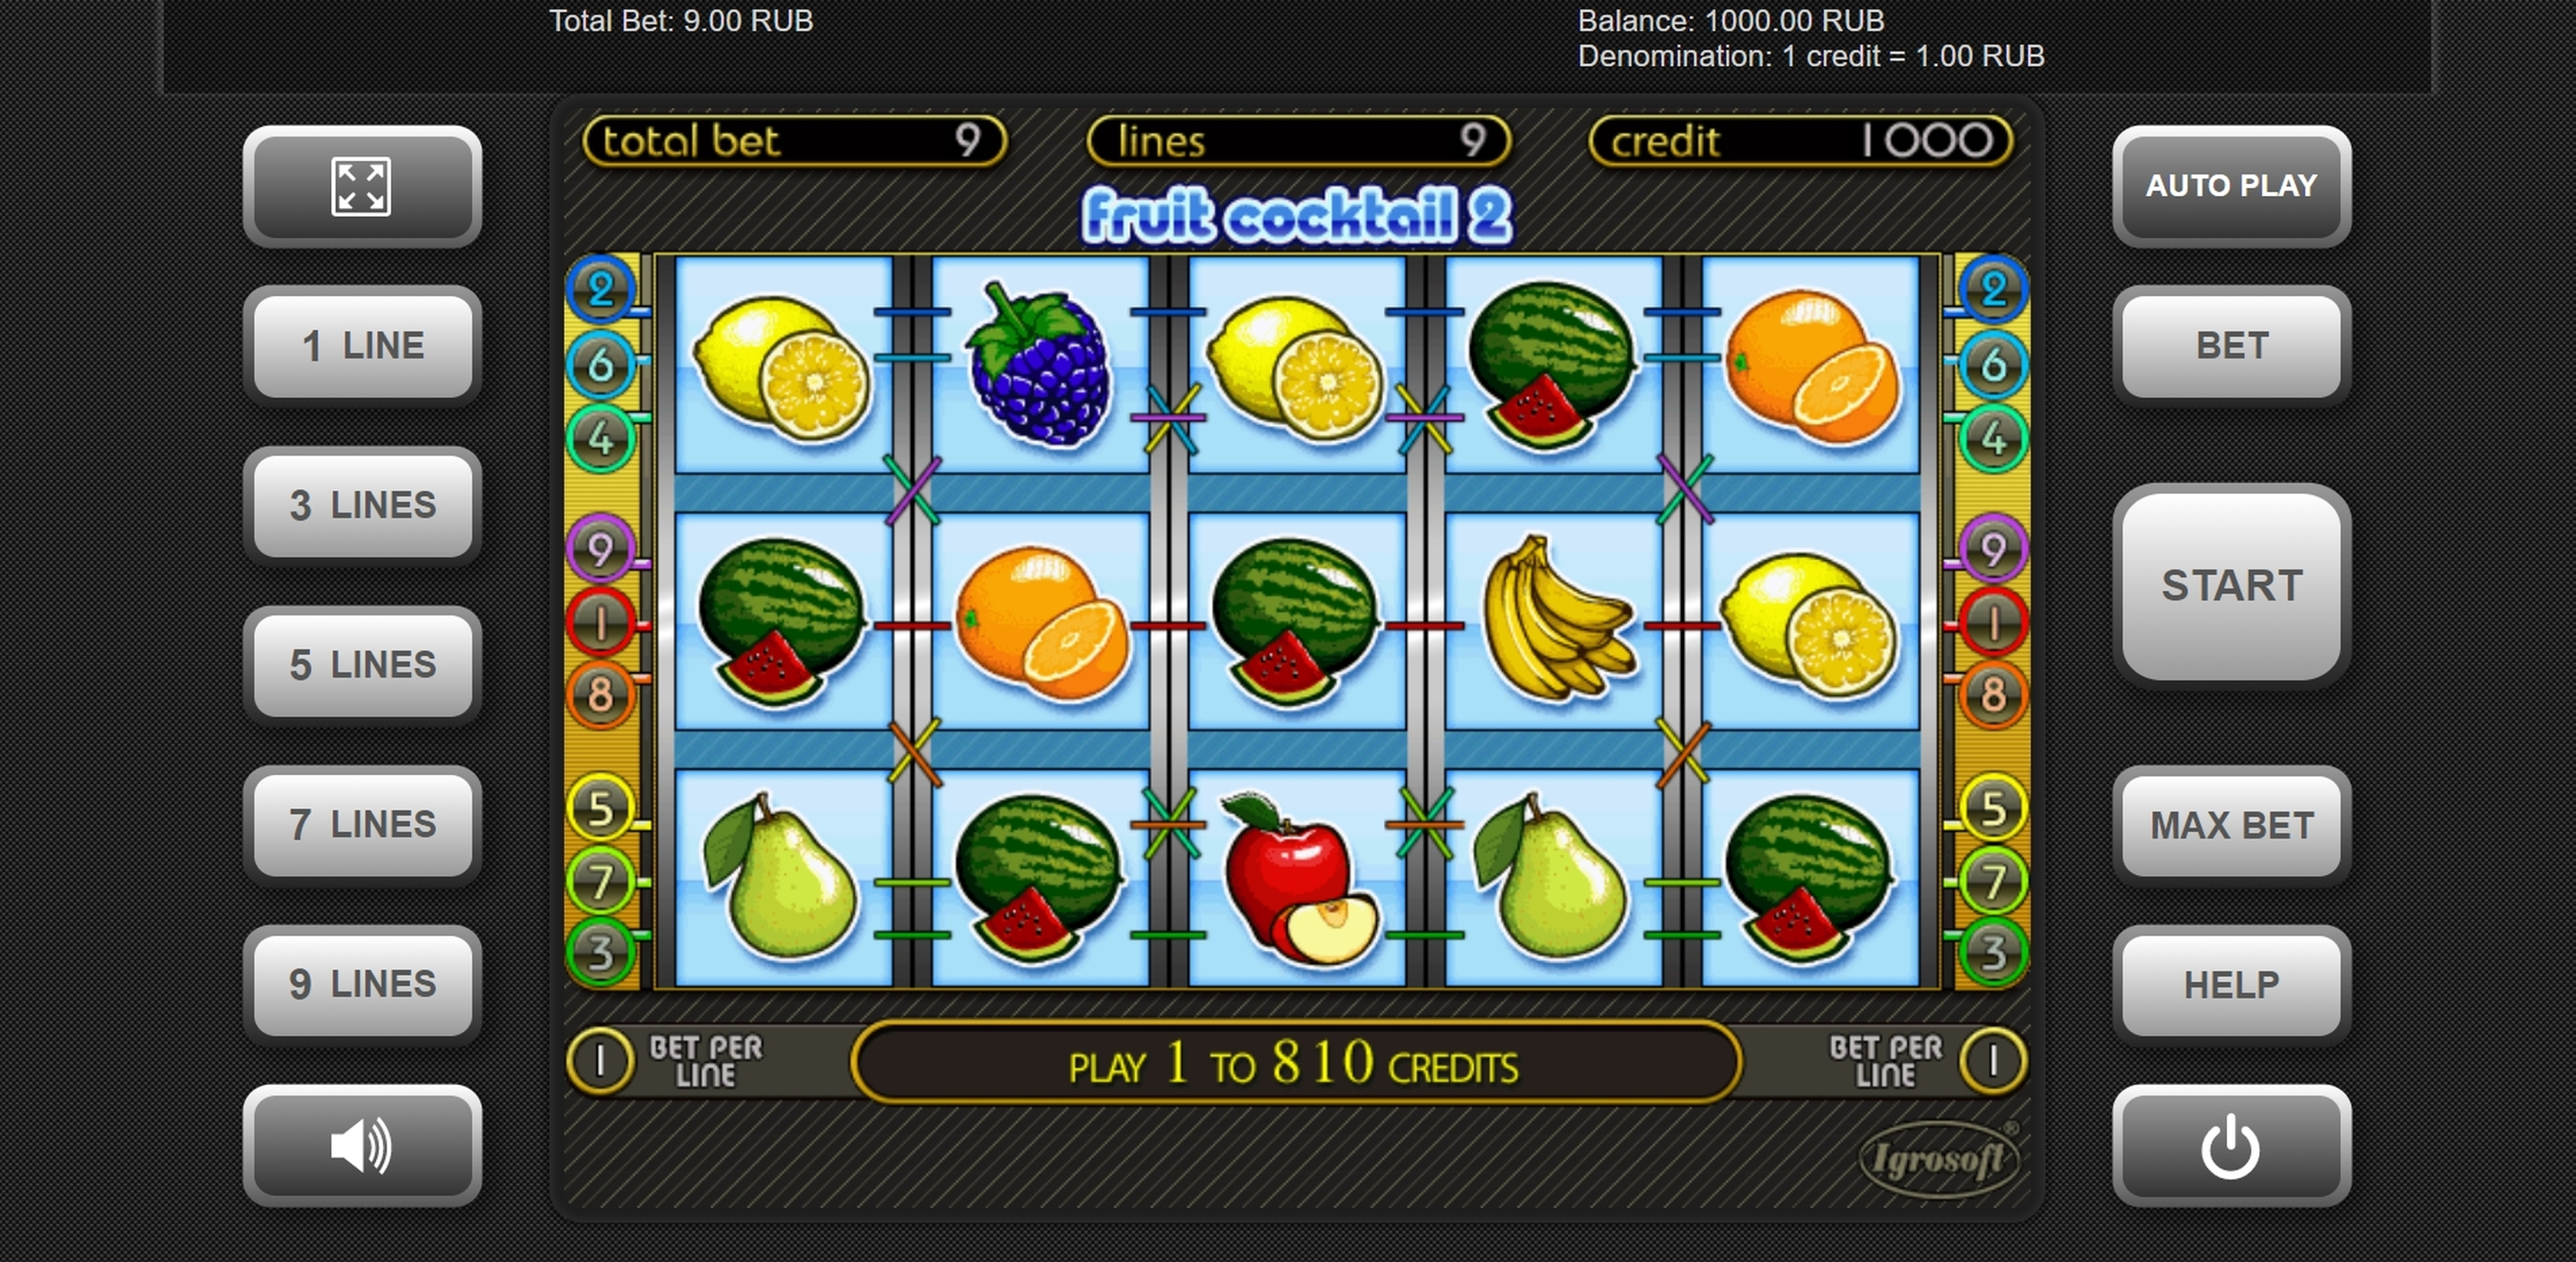 Reels in Fruit Cocktail 2 Slot Game by Igrosoft